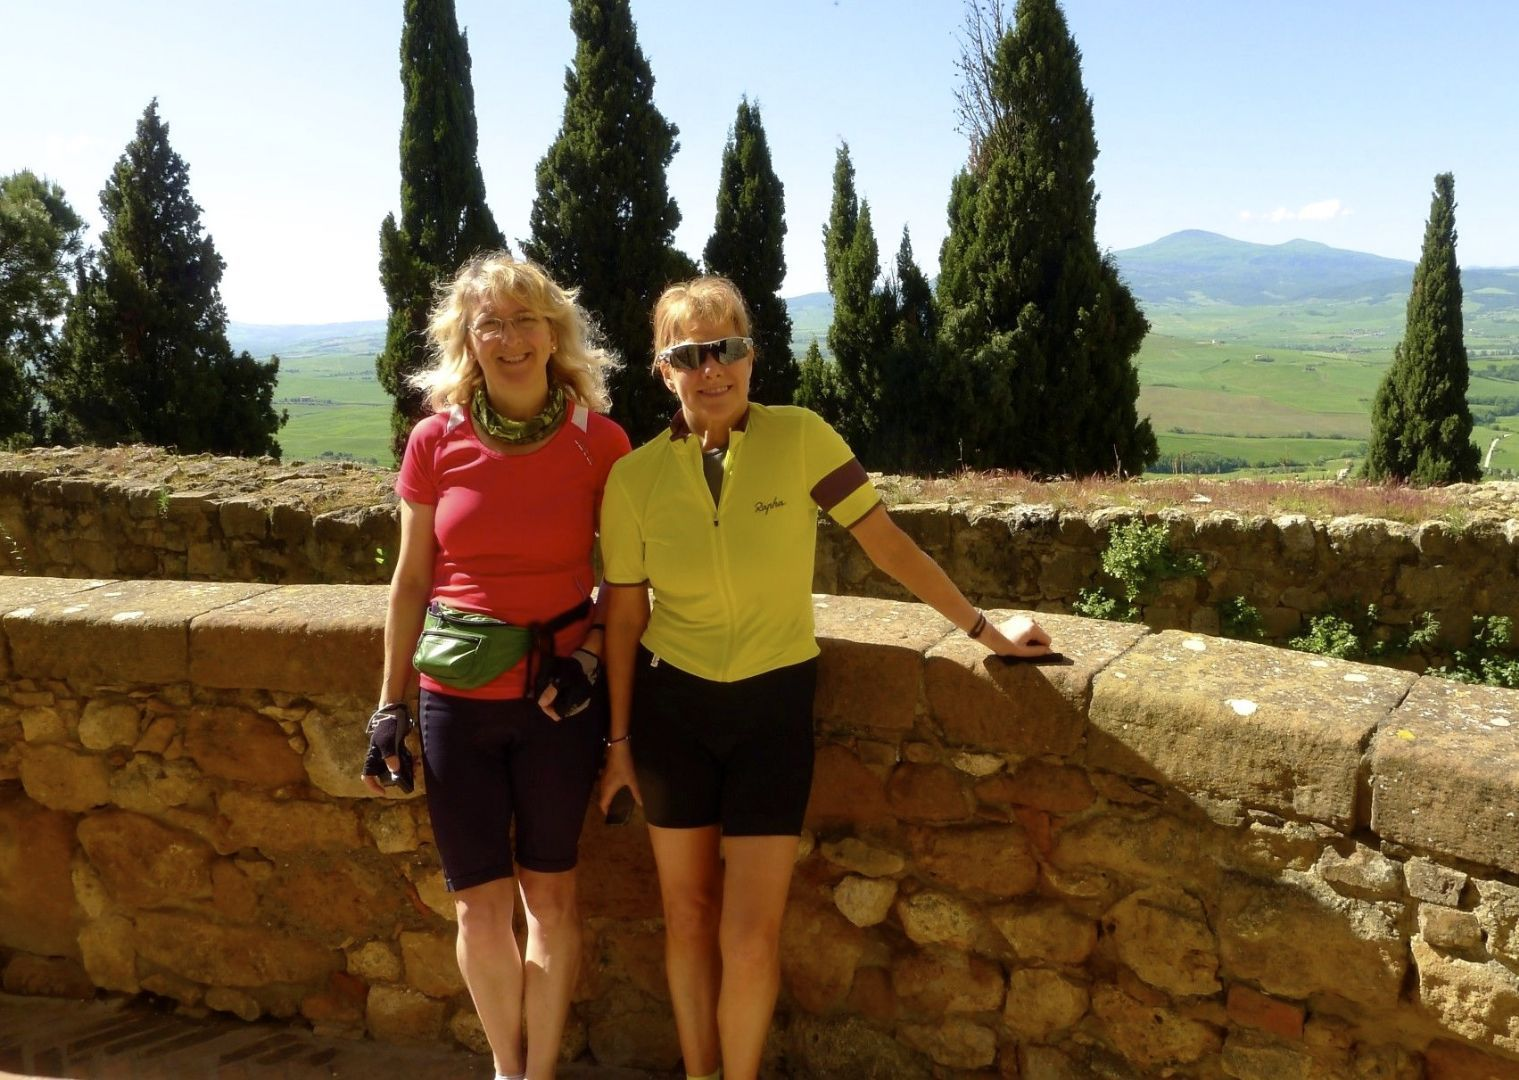 hfh cycling holiday tuscany1.jpg - Italy - Classic Tuscany - Self-Guided Leisure Cycling Holiday - Leisure Cycling